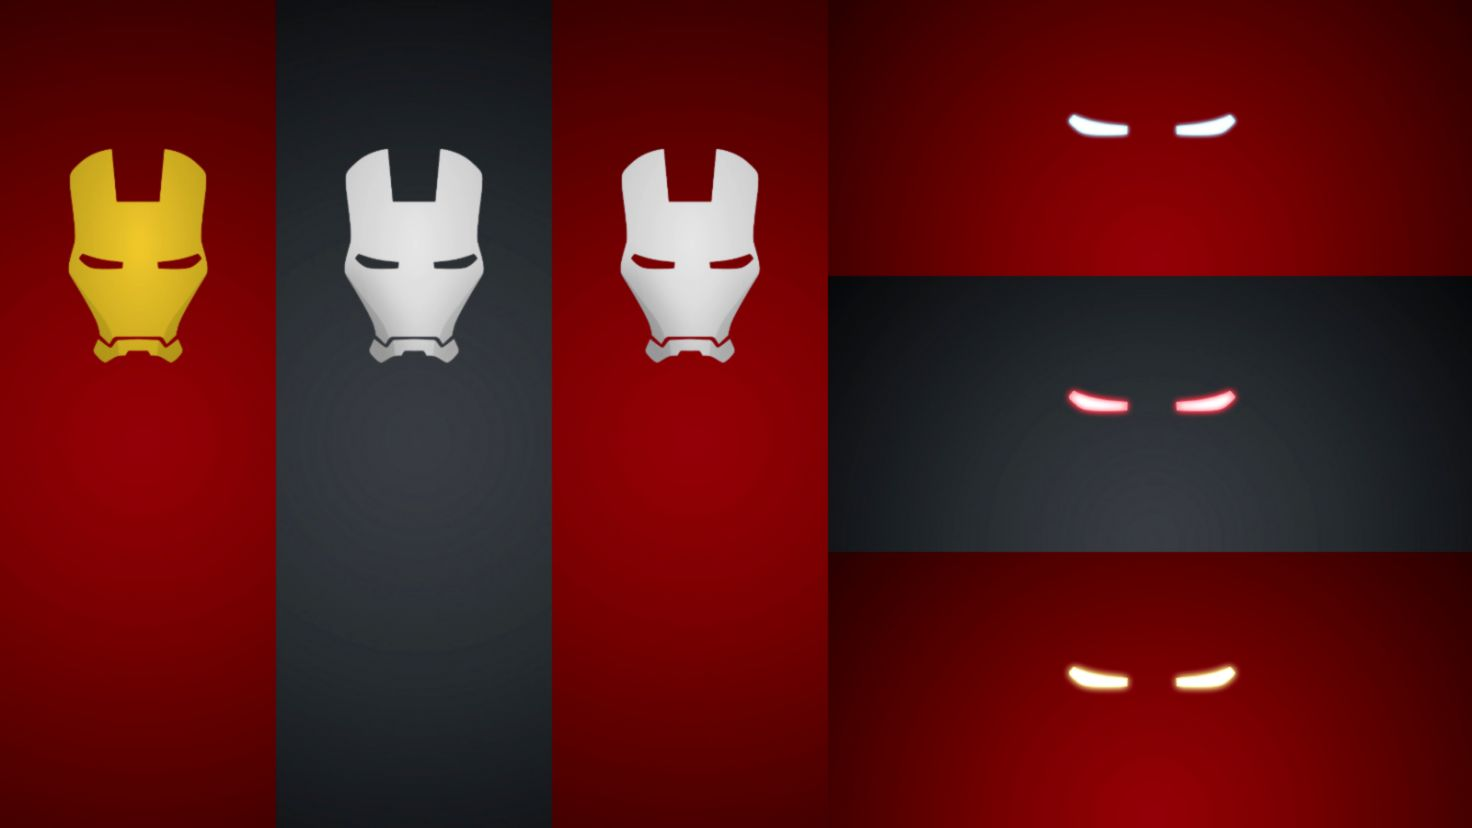 Iron Man Red Minimalism Hd Wallpaper Best Wallpapers Hd Gallery